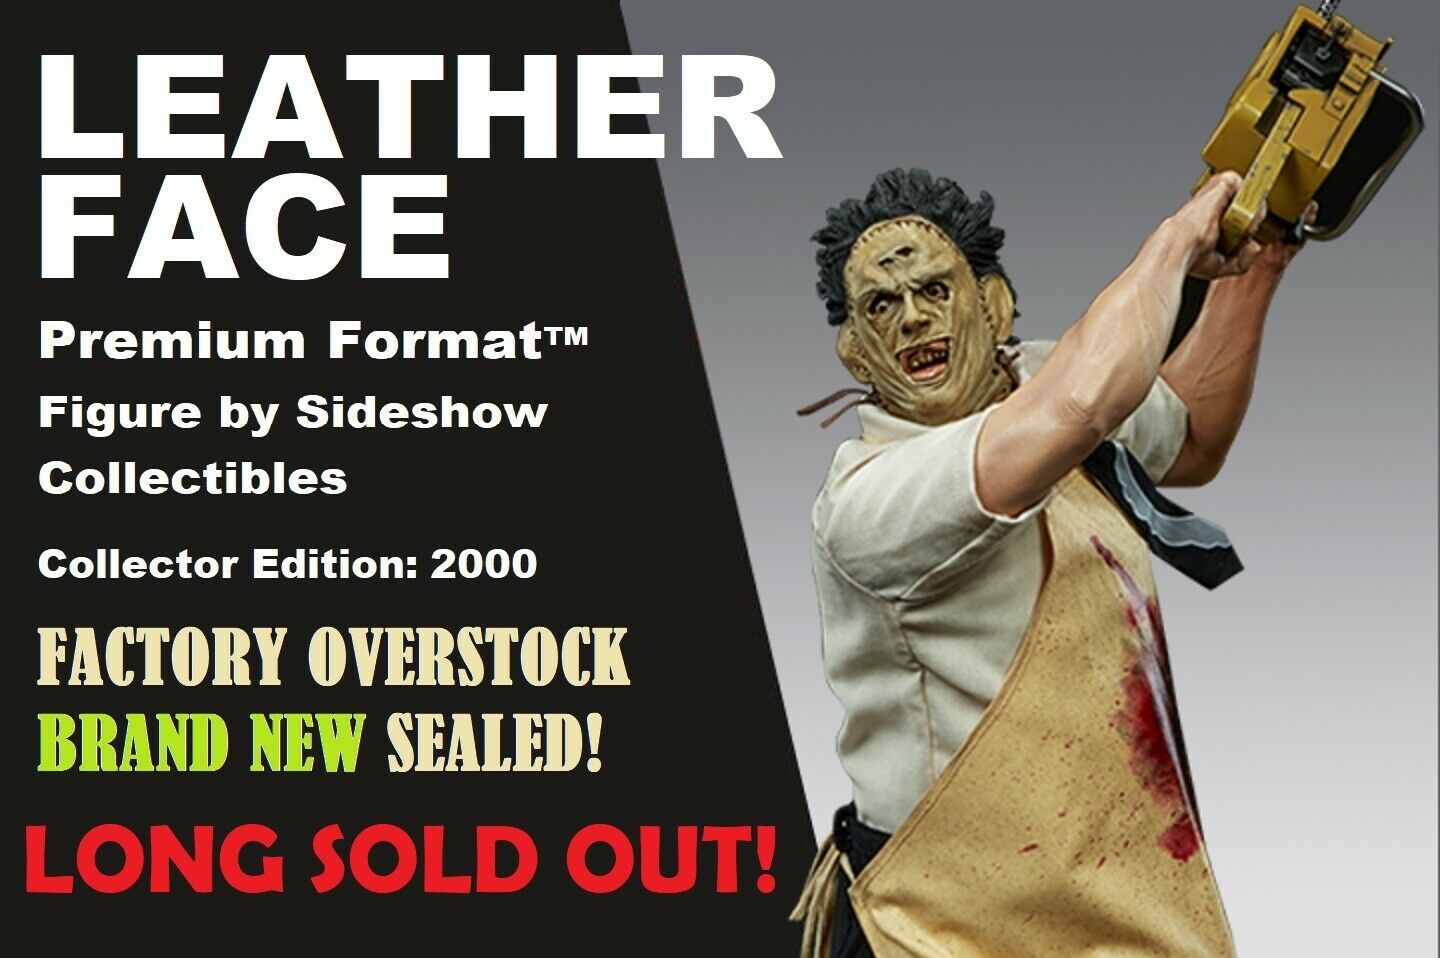 Leatherface Premium Format Statue by Sideshow Collectibles 300443